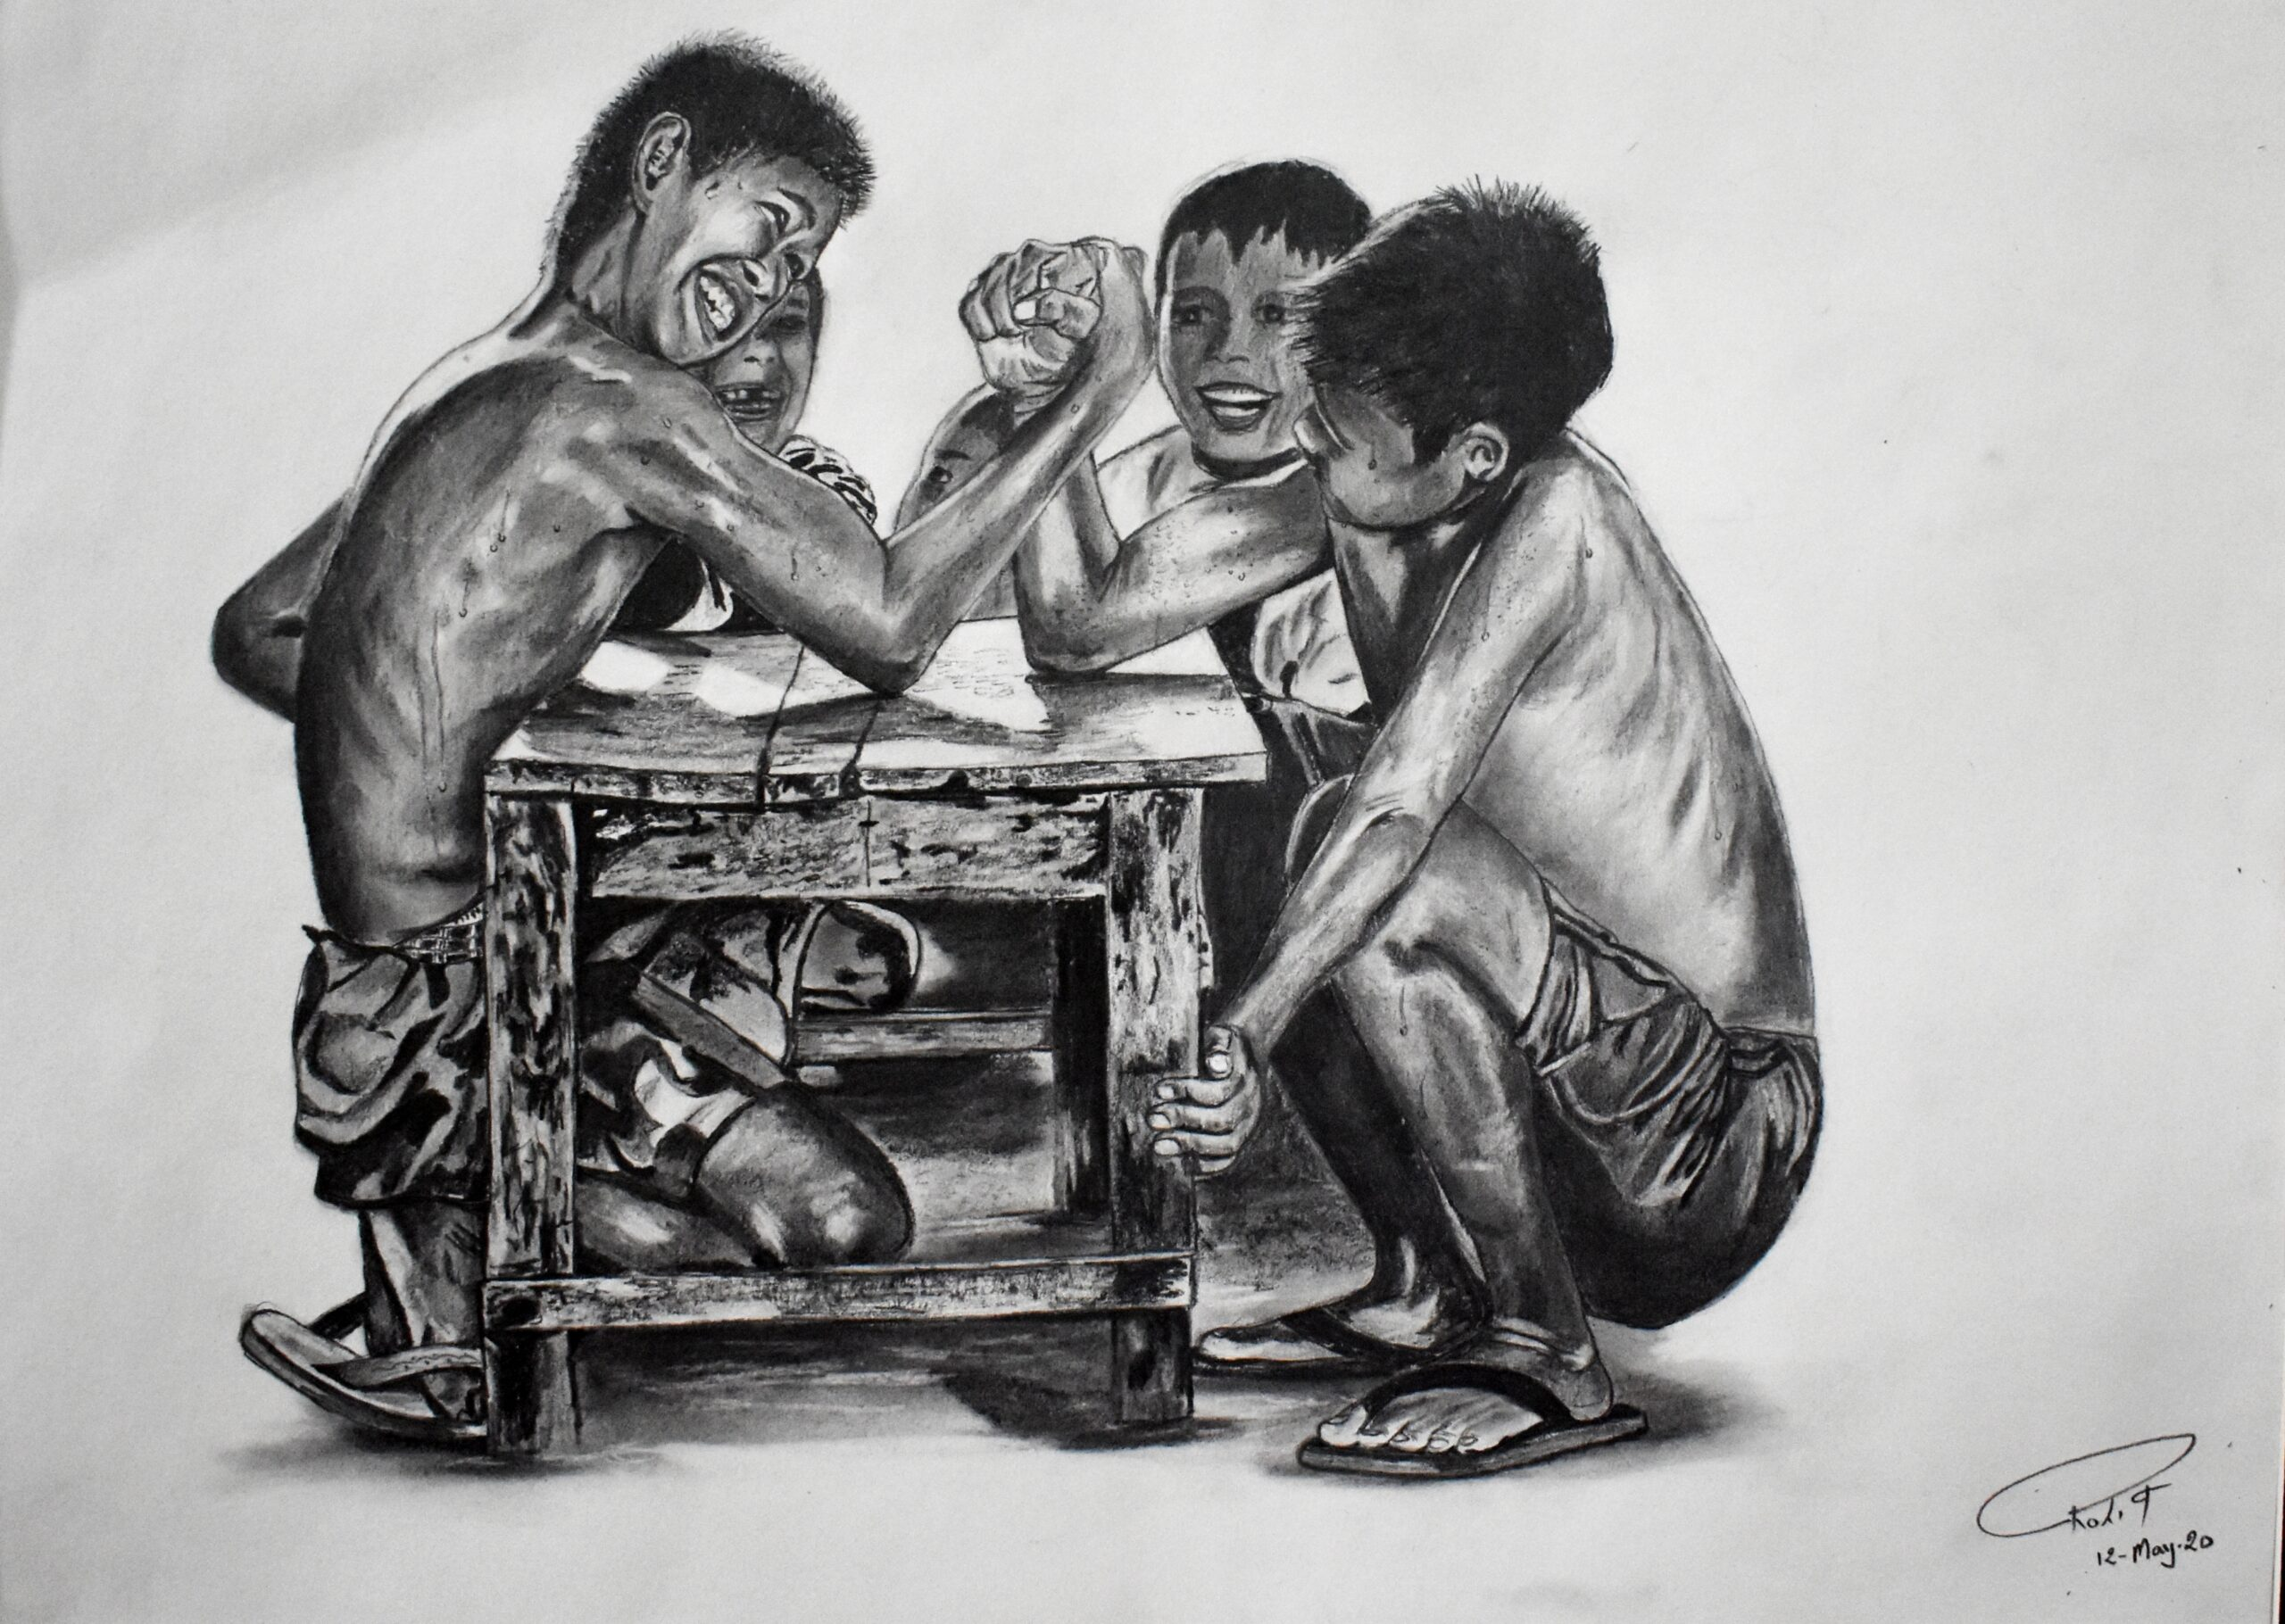 Kids Arm Wrestling,  200 GSM PAPER, 12″ x 18″ CHARCOAL